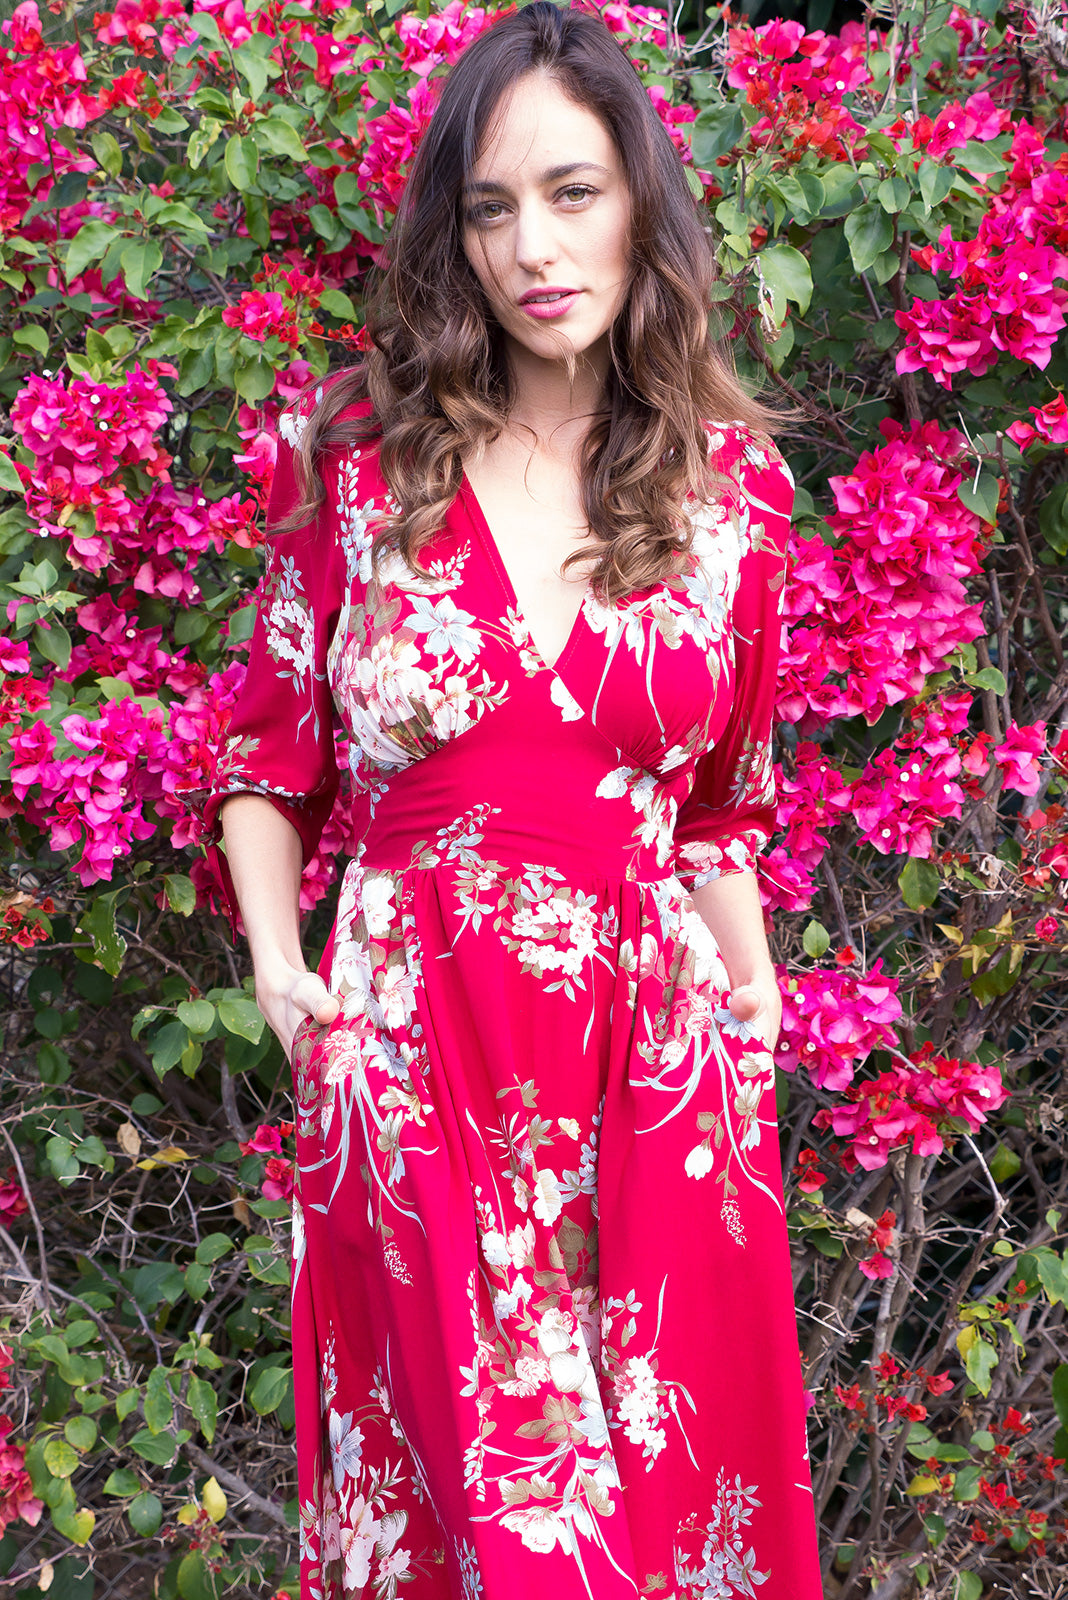 Henrietta Red Bouquet Midi dress features a vintage inspired fitted basque waist and elasticated waist with a midi sleeve and deep v neck the fabric is a soft woven rayon in a bright red floral bouquet print